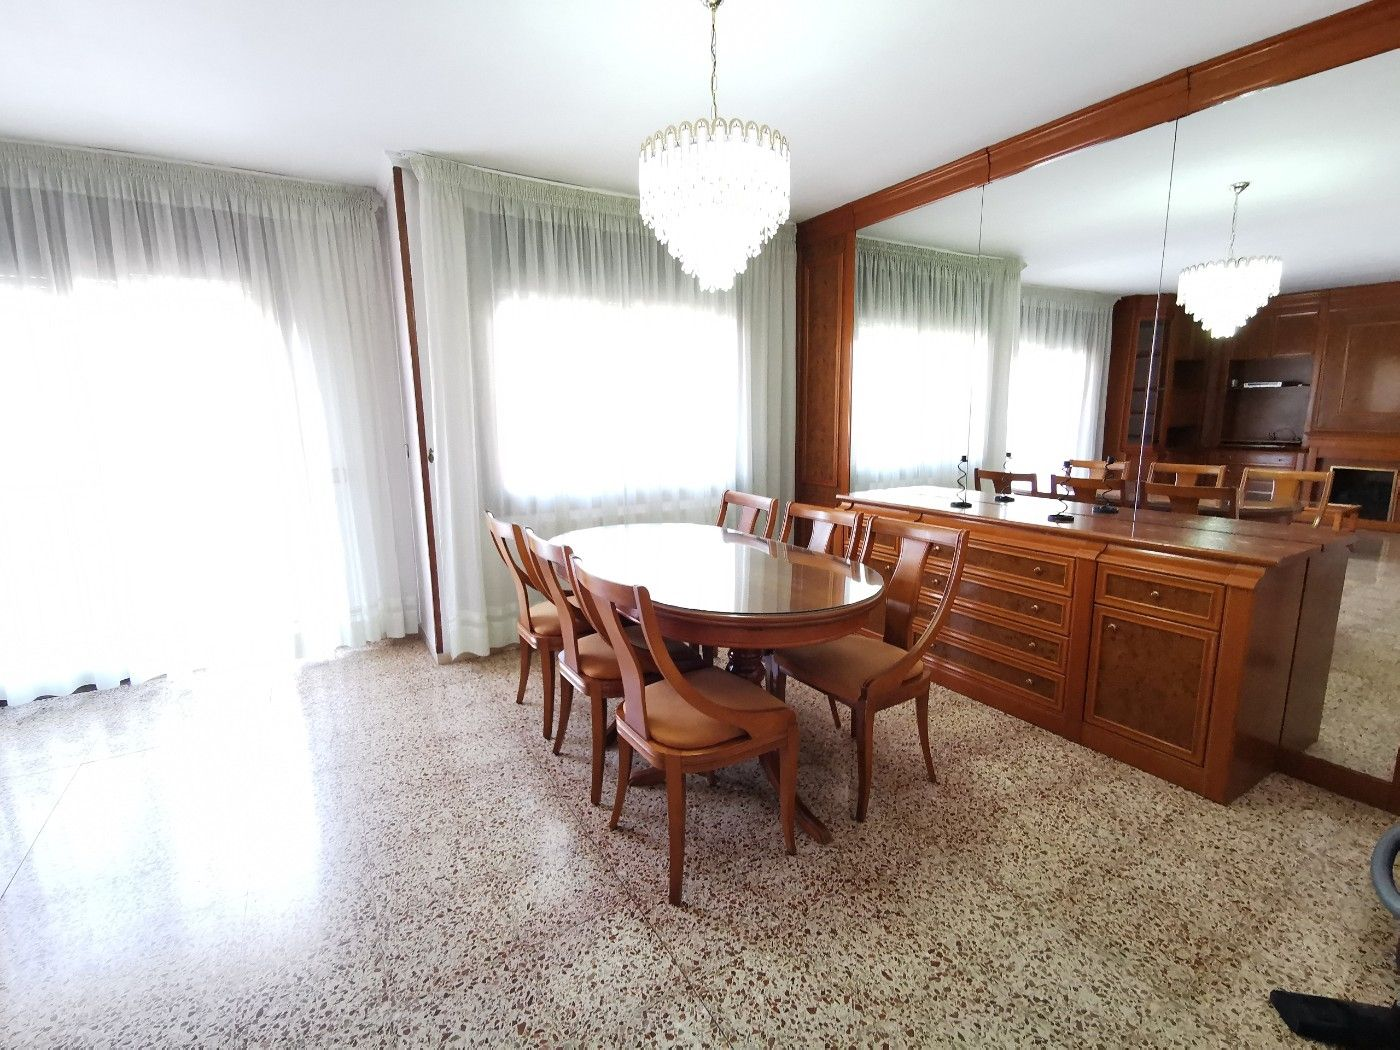 Location Appartement à Ferrocarril, s/n. Piso y parking!!!